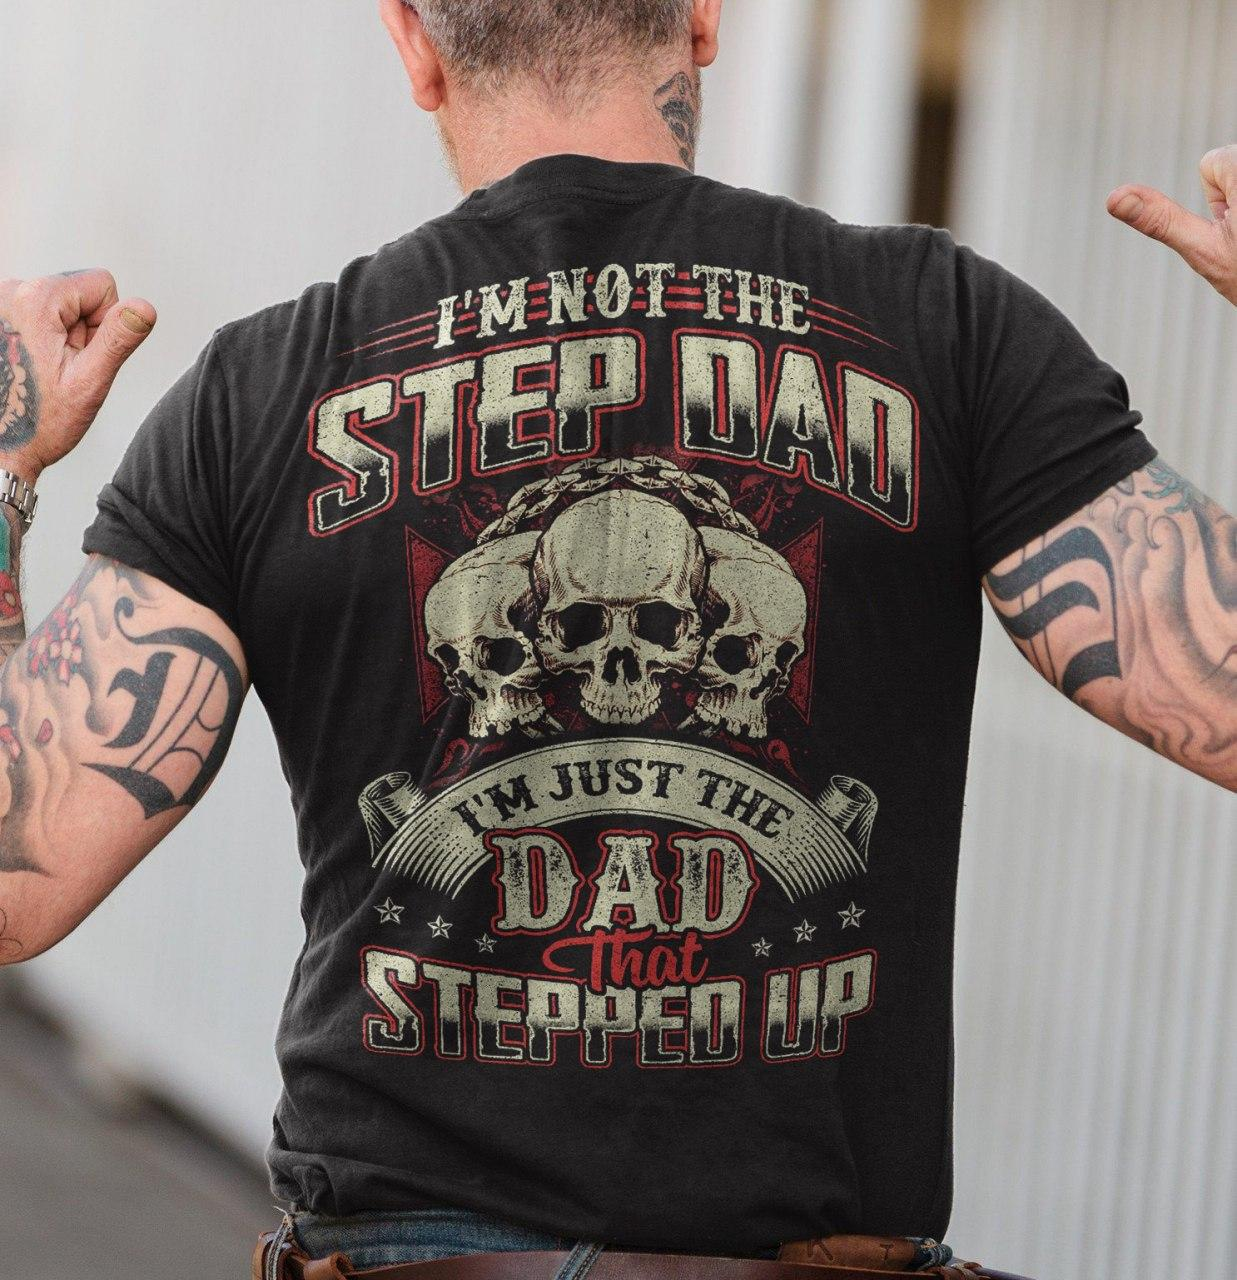 Skull Stepdad Shirt Not The Stepdad I'm Just The Dad Step Up